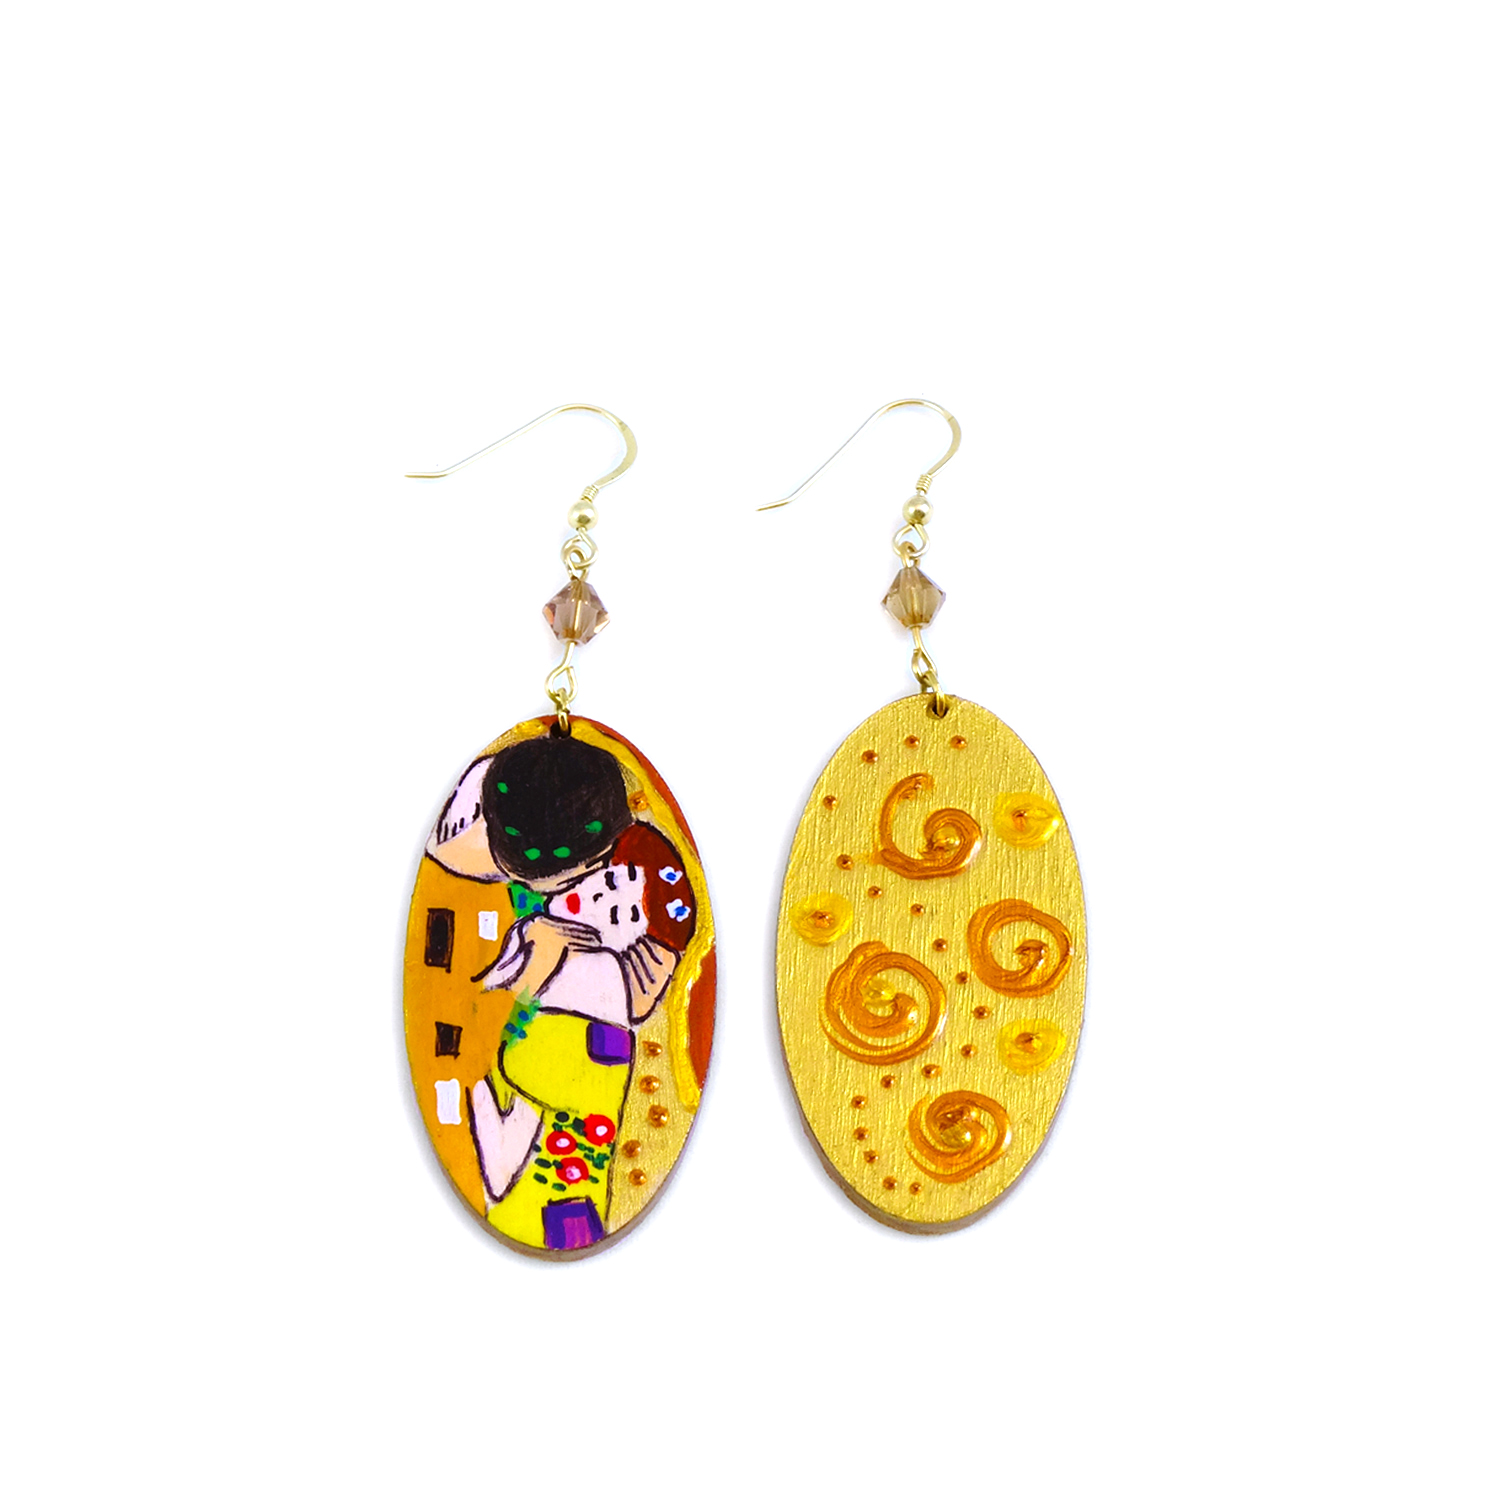 Handpainted Earrings - The Kiss by Klimt